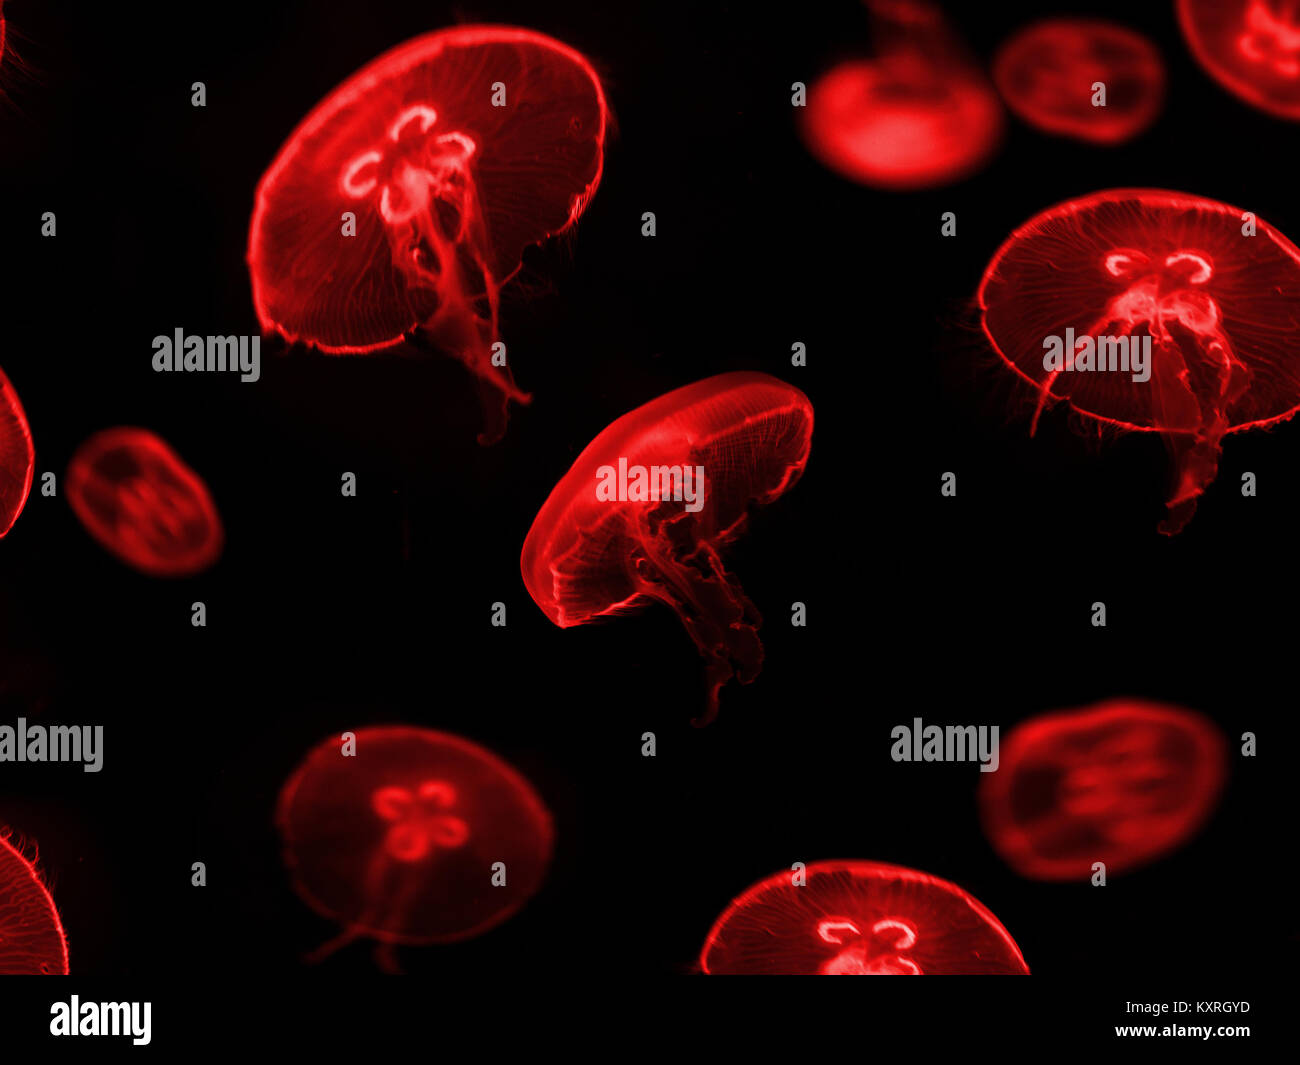 red jellyfish on black background - - Stock Image